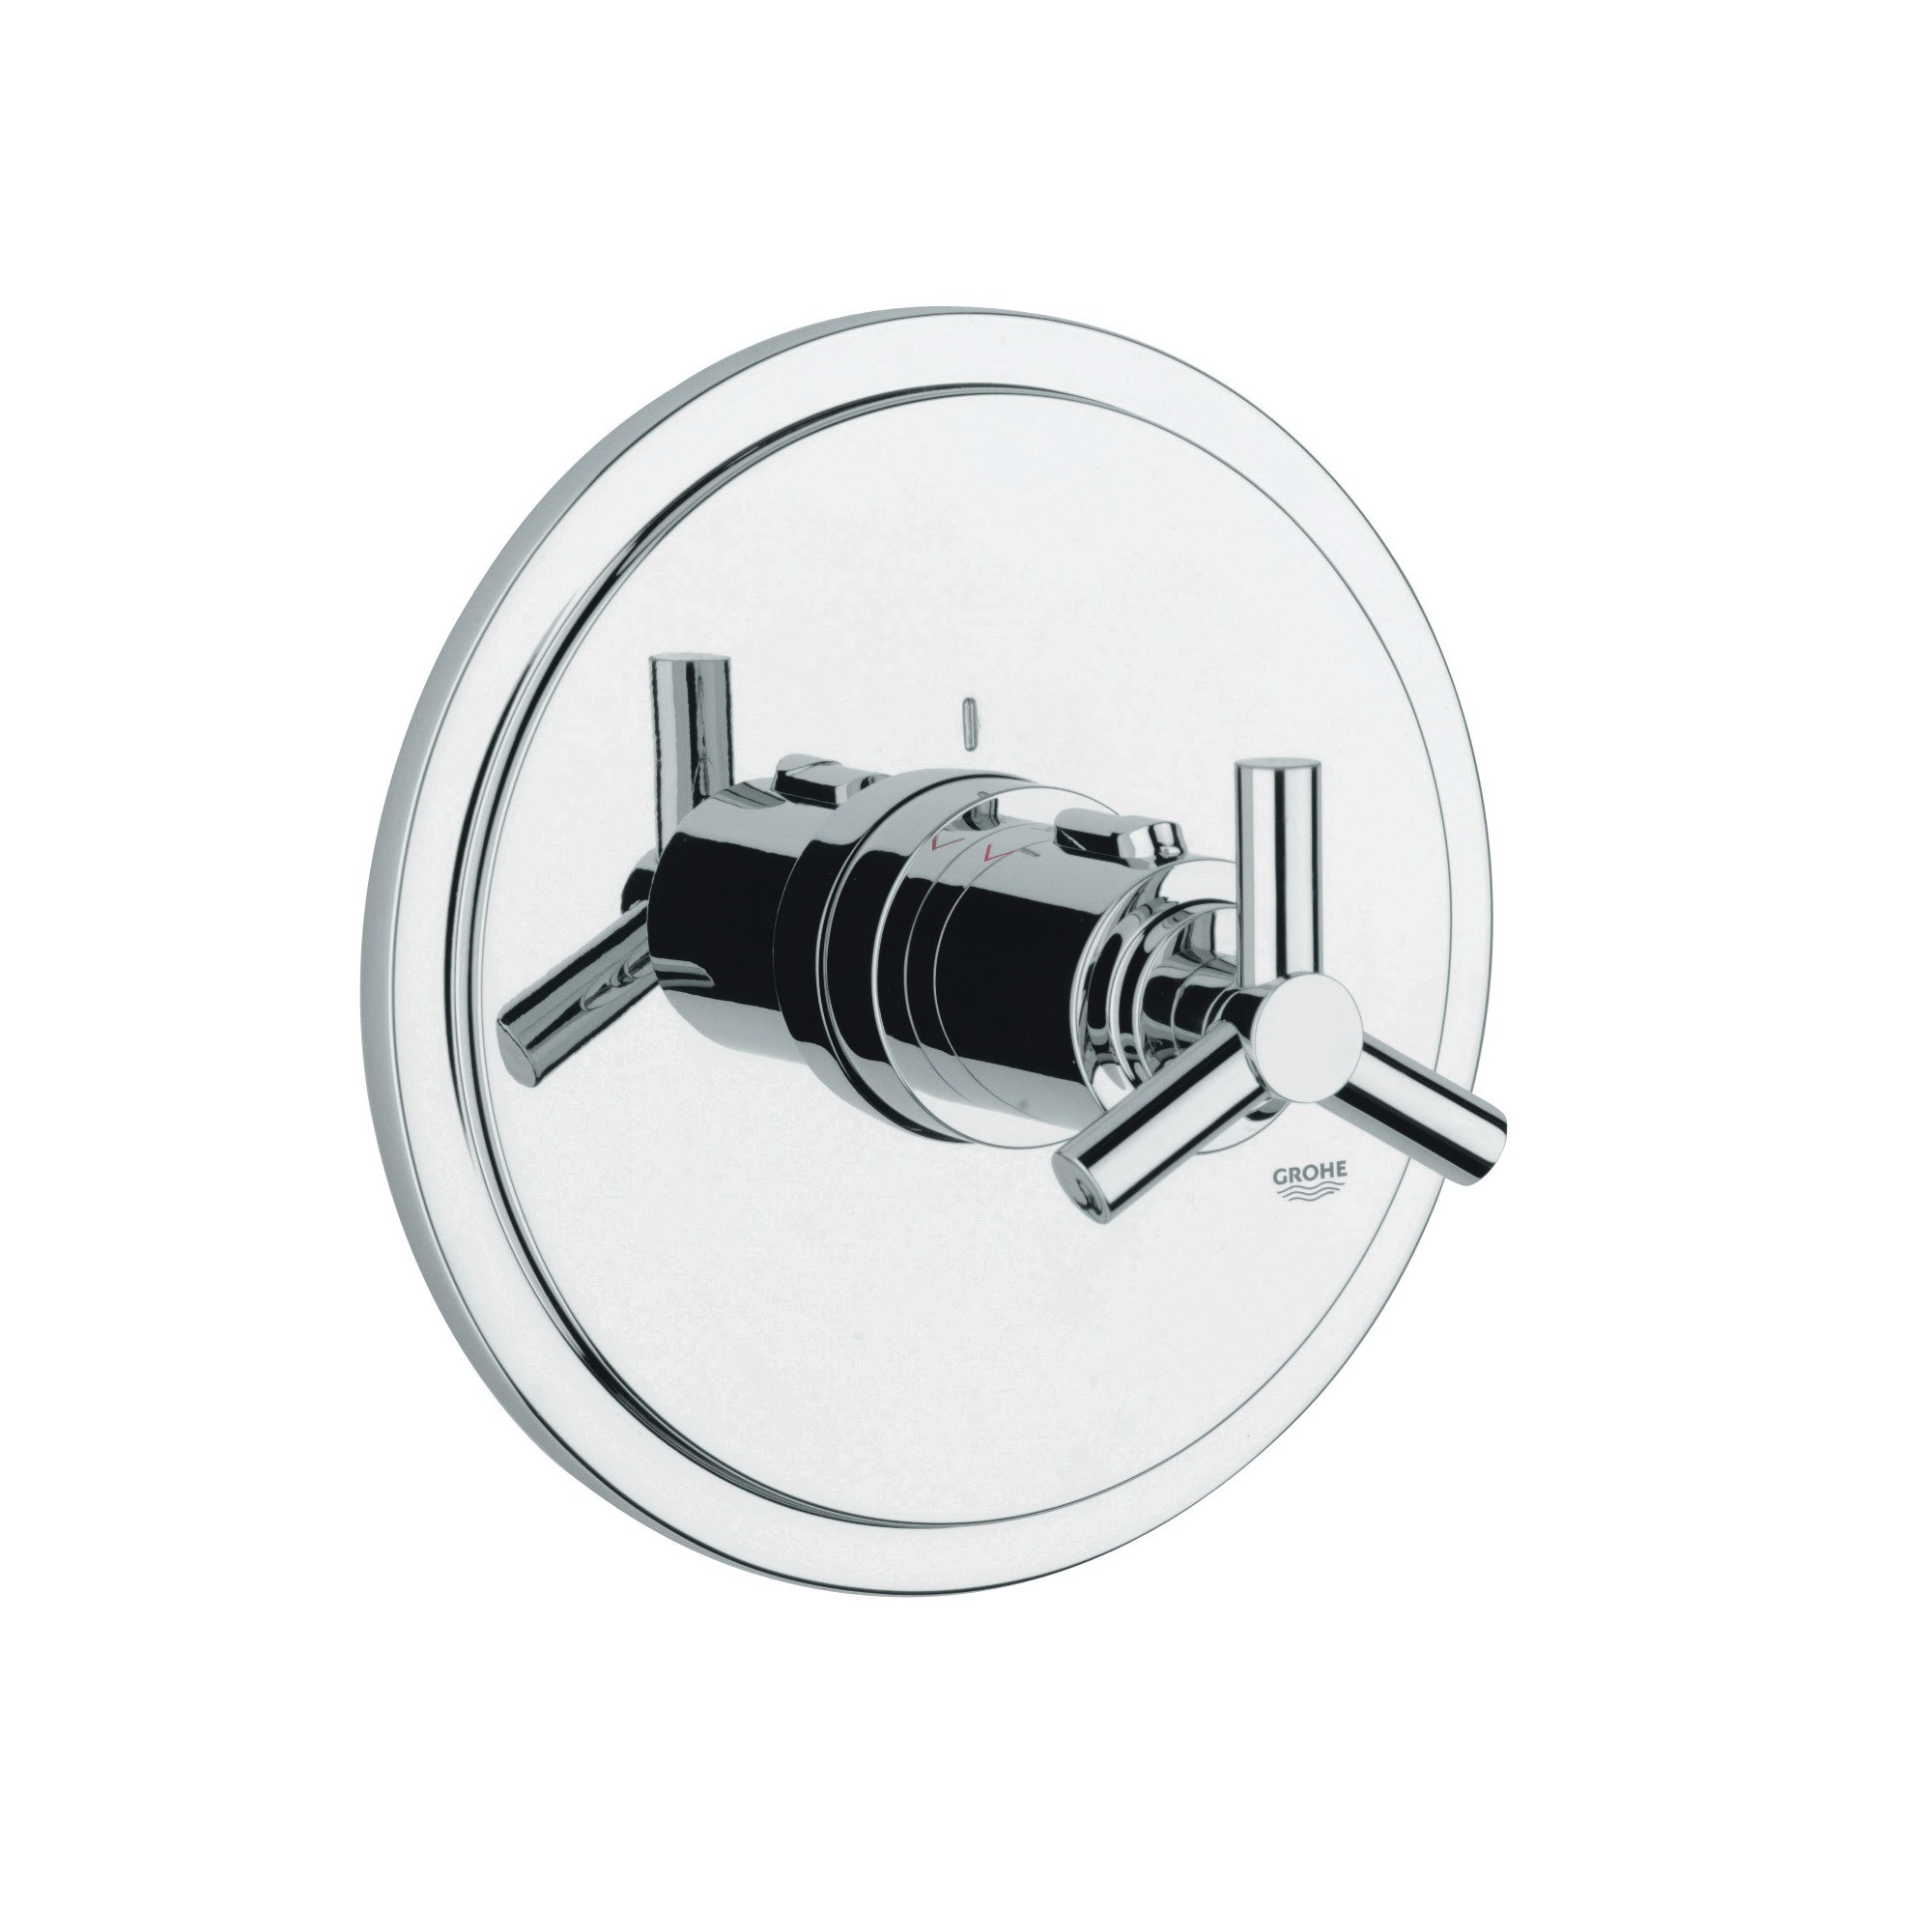 GROHE 19169000 Atrio® Central Thermostatic Mixer With Ypsilon Handle, Hand Shower Yes/No: No, Chrome Plated